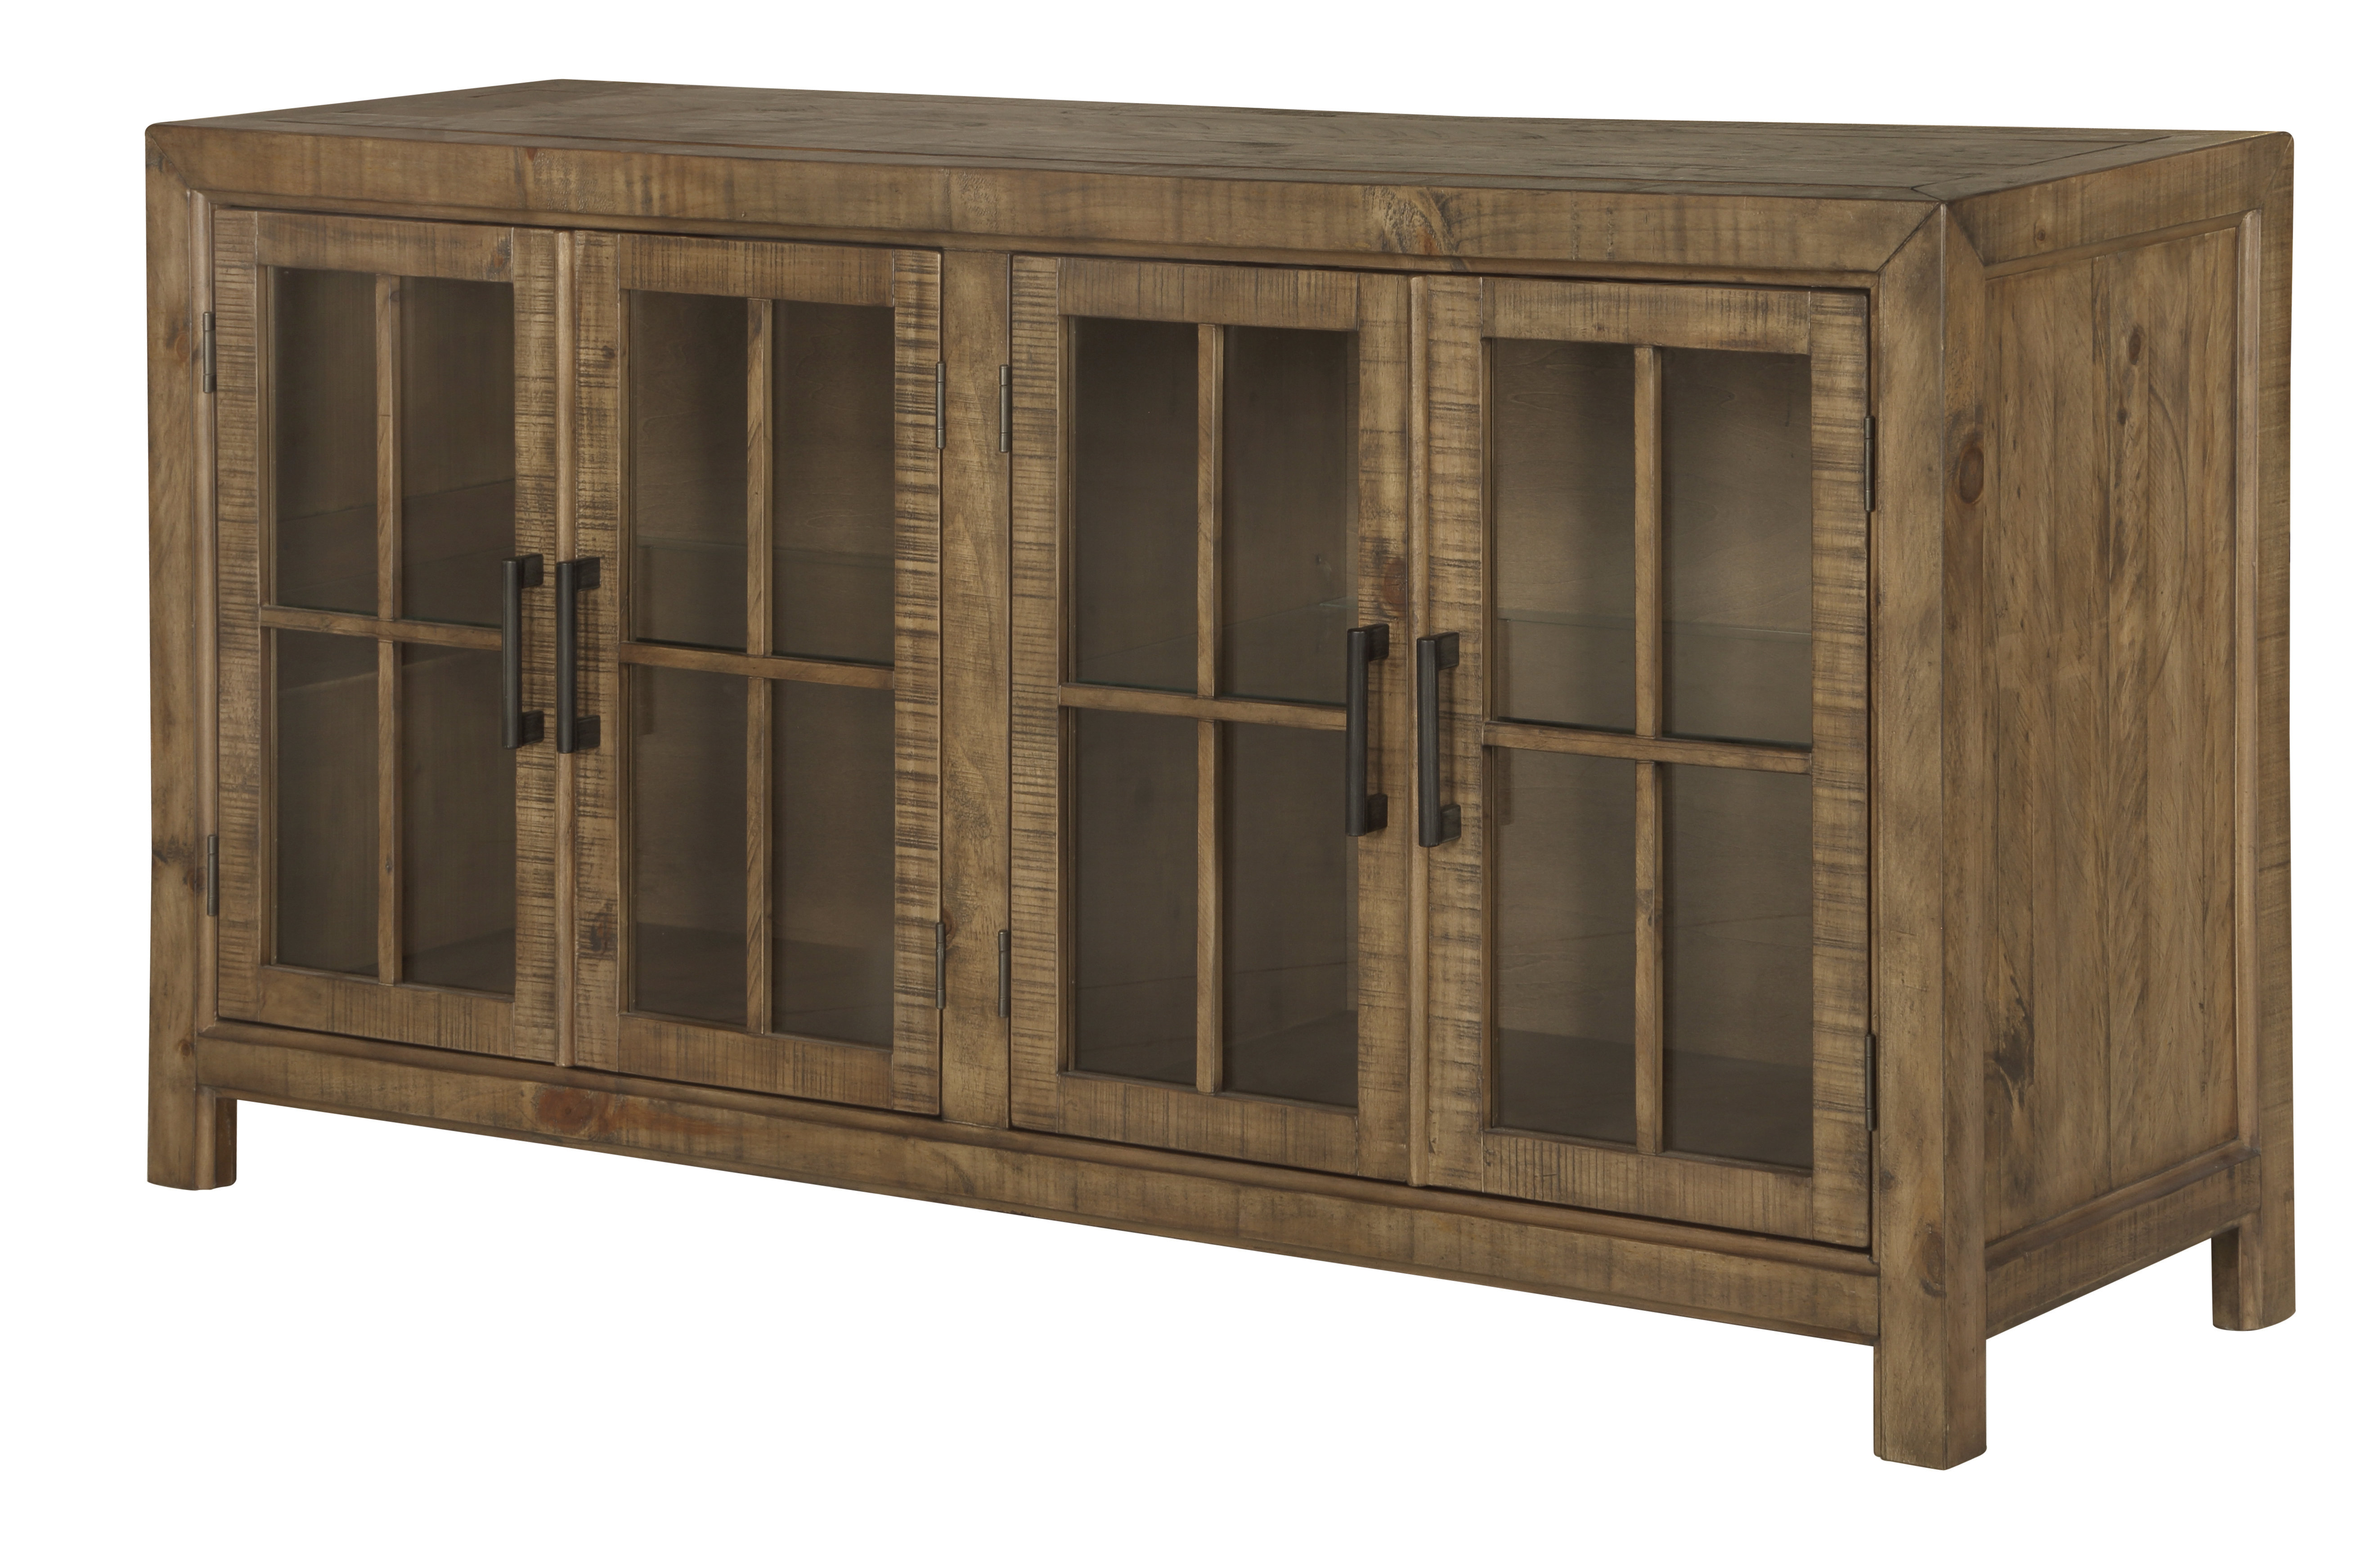 Filkins Sideboard With Regard To Most Up To Date Melange Brockton Sideboards (View 10 of 20)